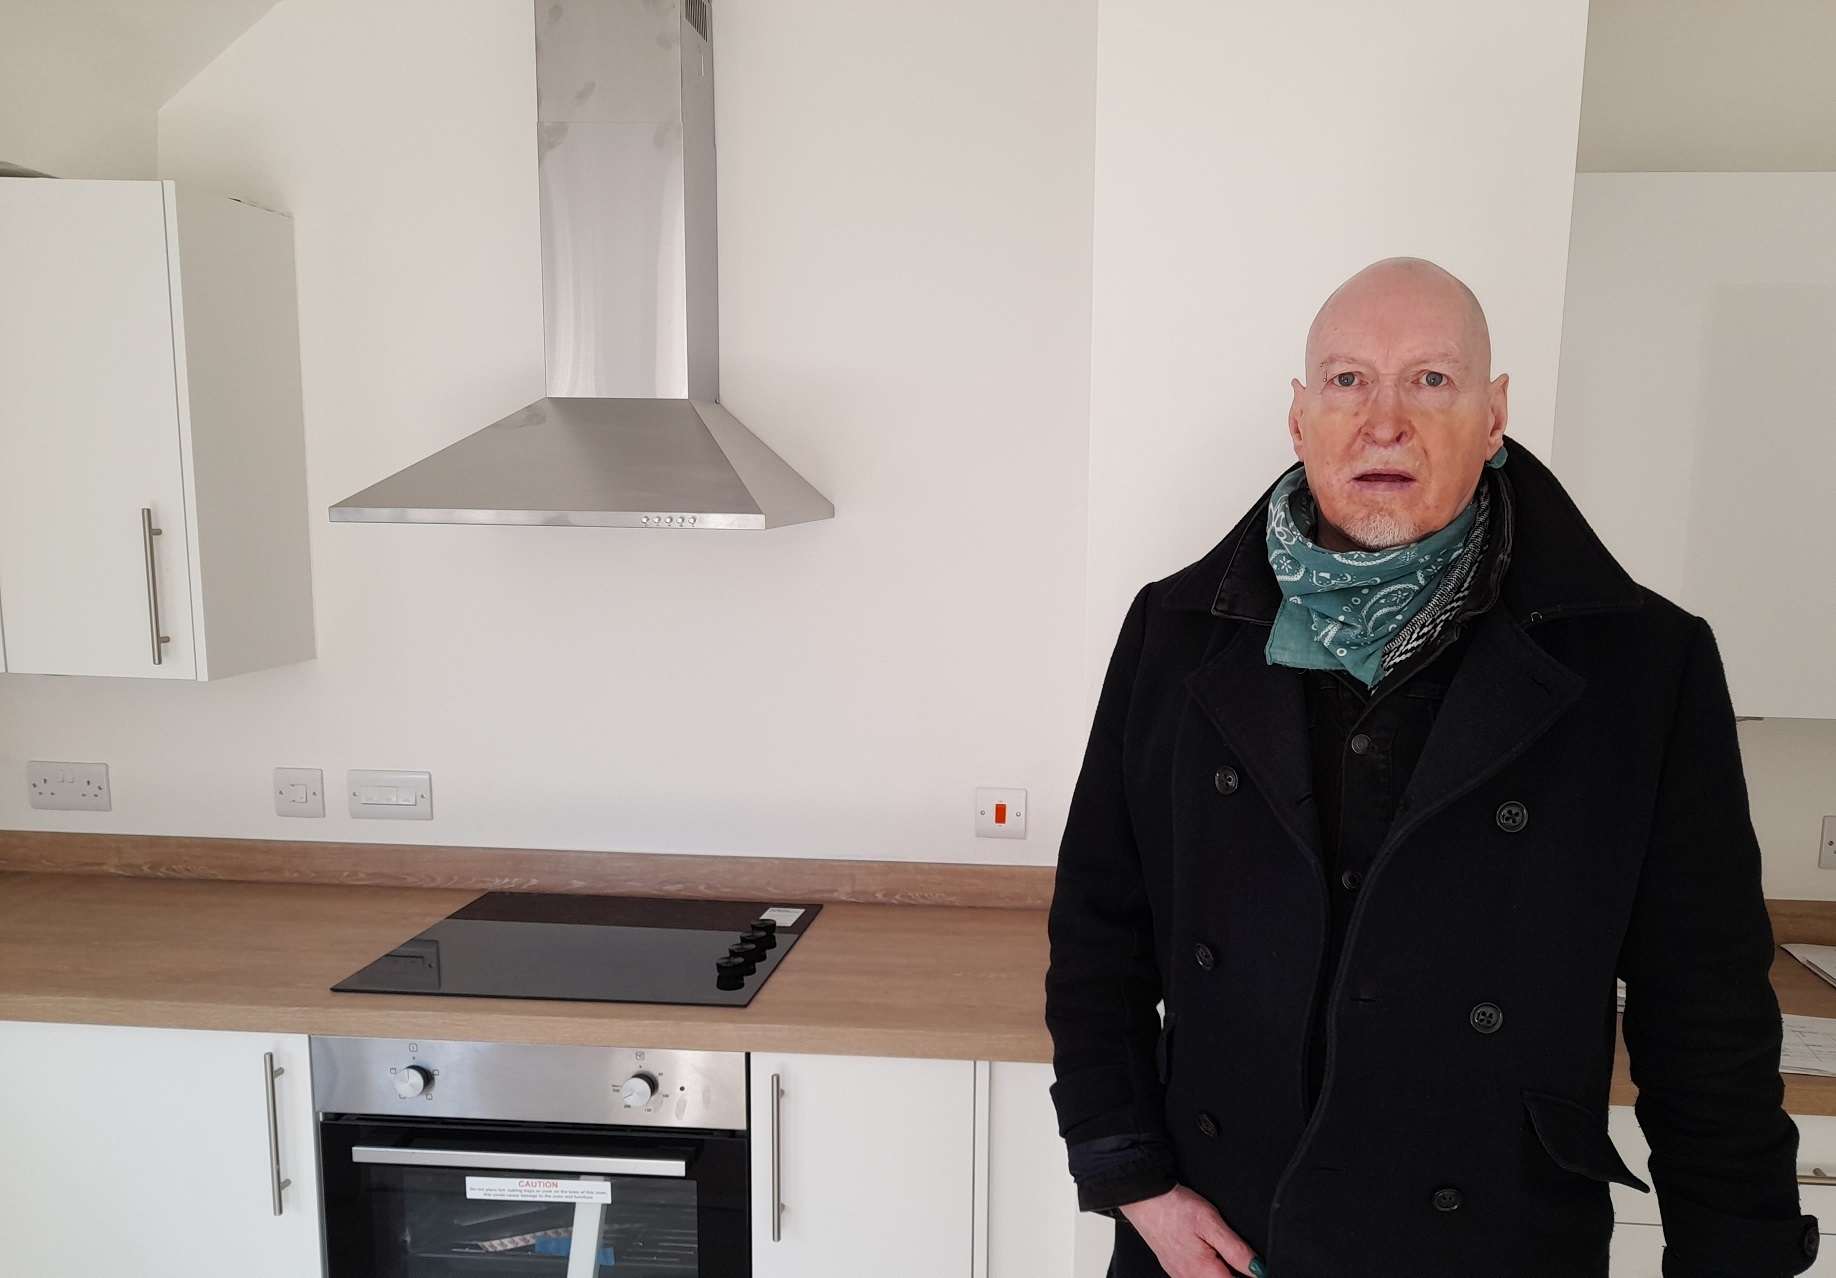 Armed Forces veteran, Neil Murphey, standing in his kitchen in his Johnnie Johnson Housing home.